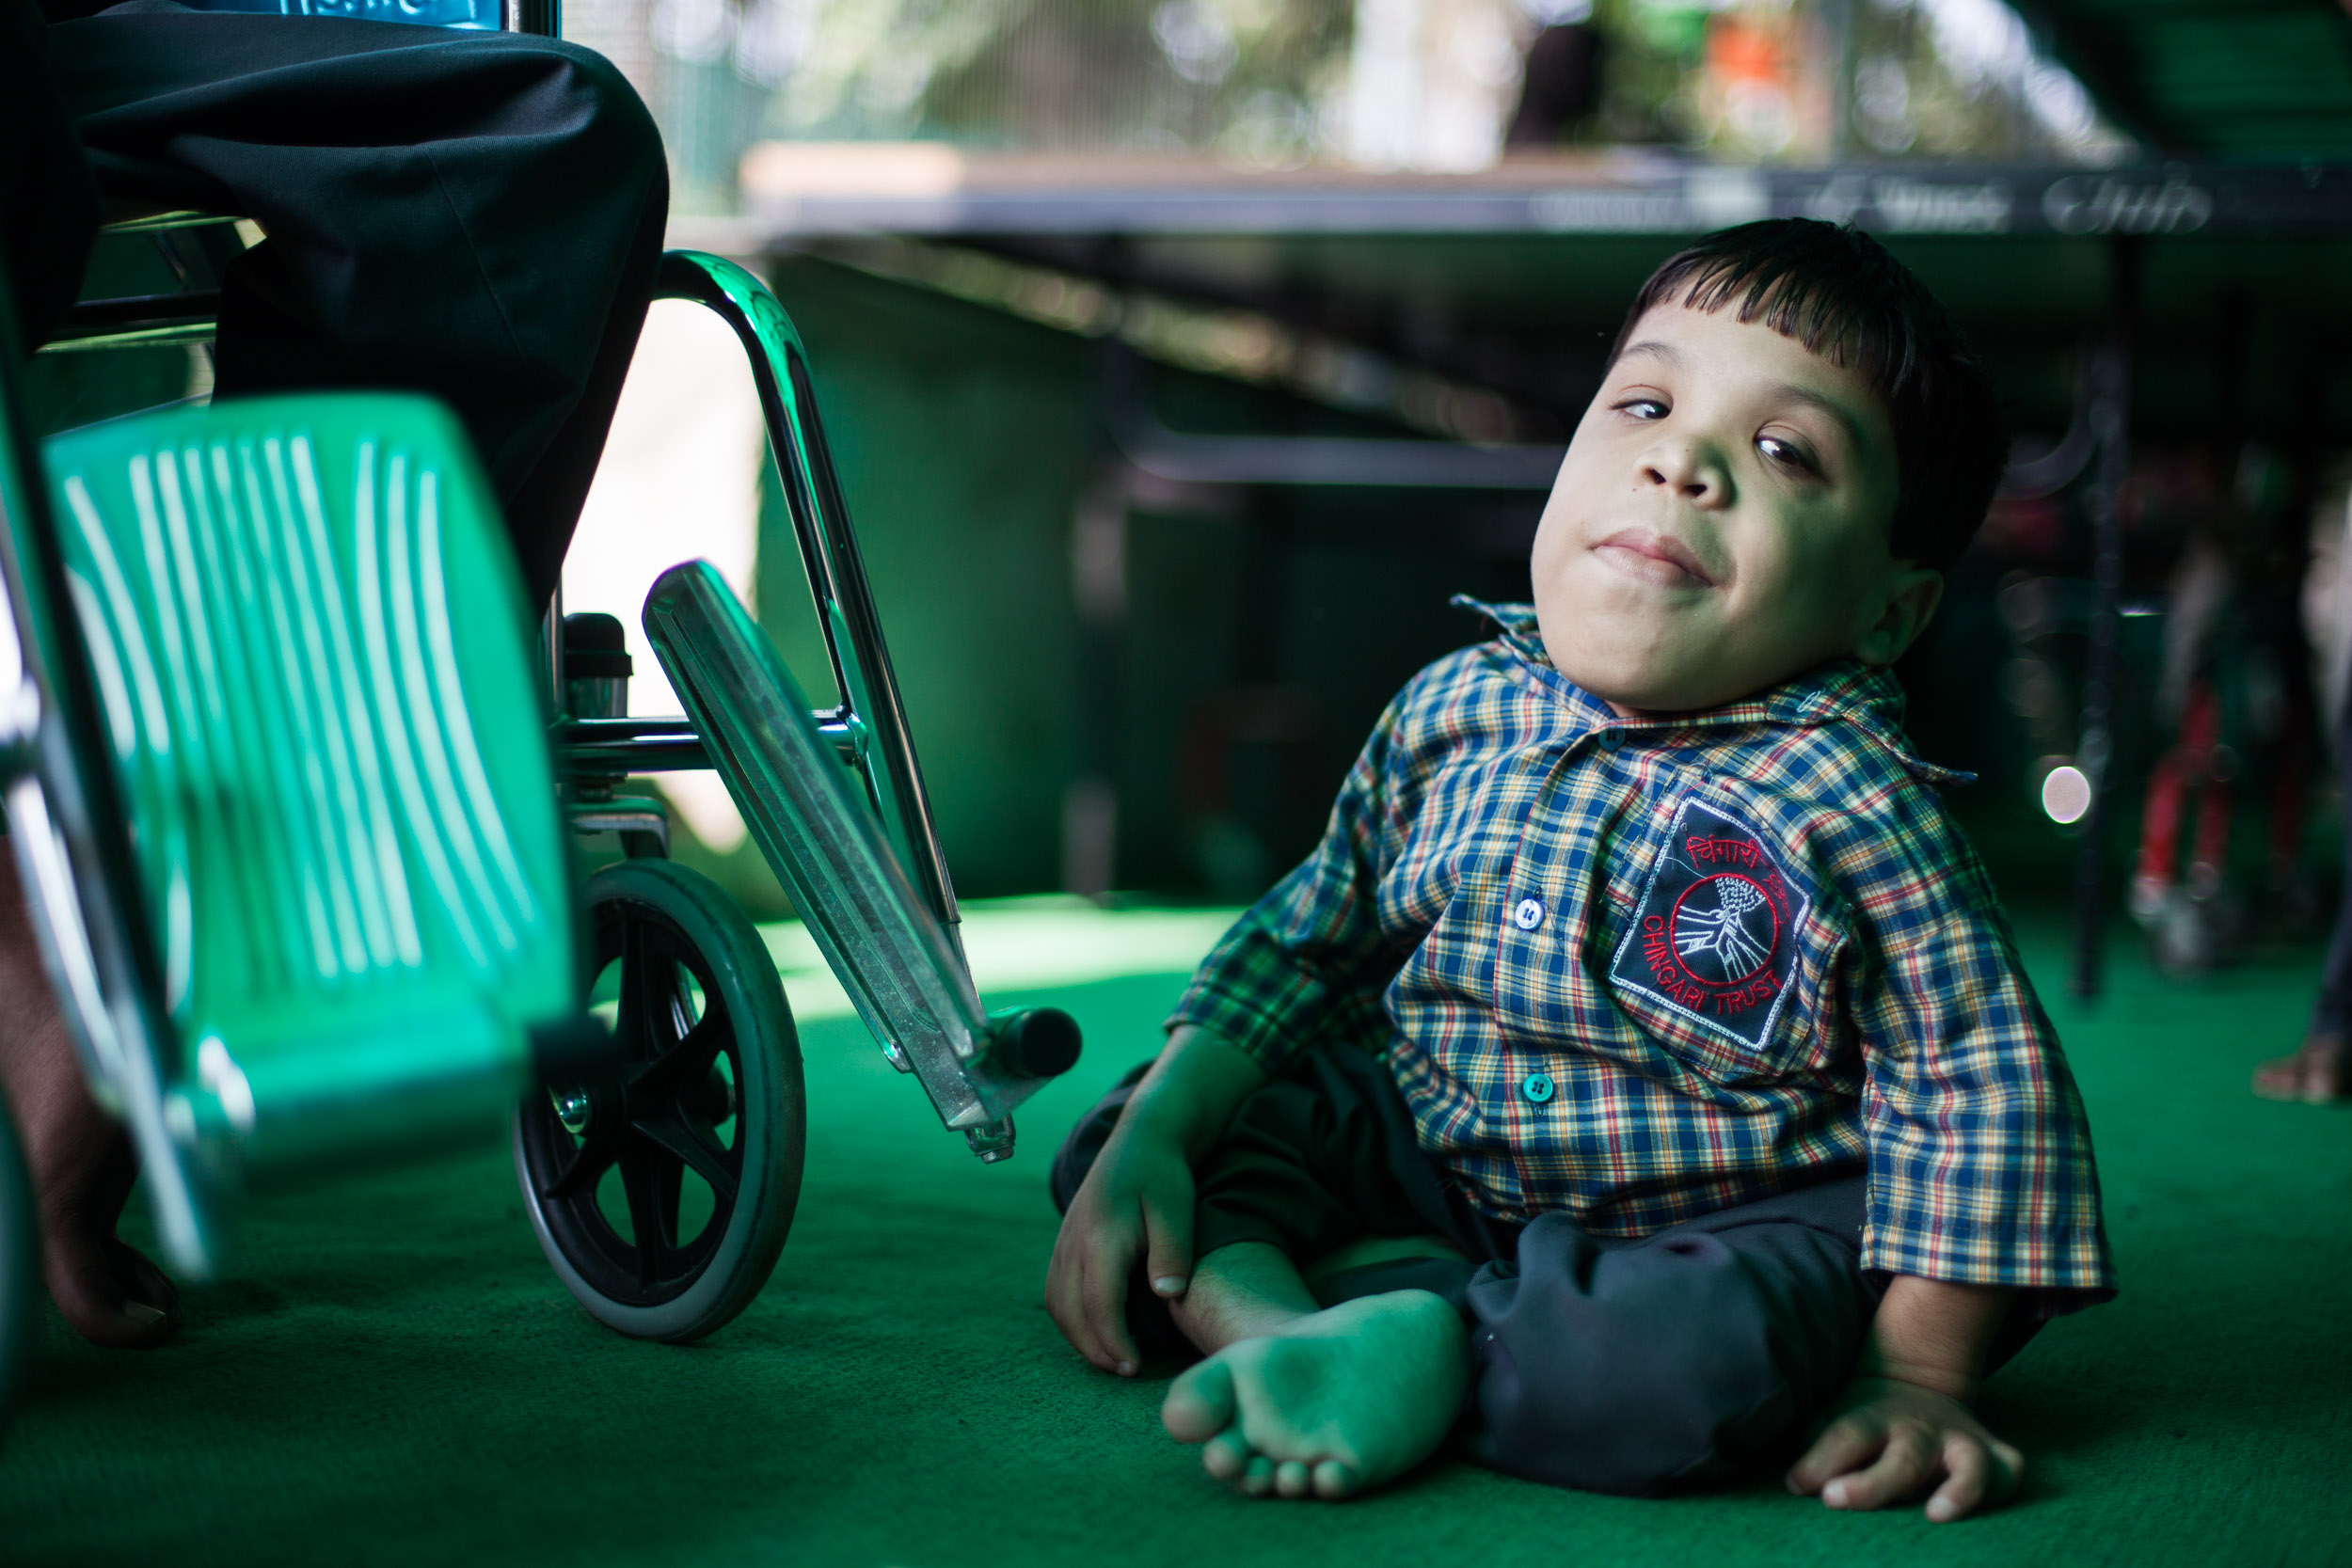 One of the kids of Bhopal that was born with problems after the accident. Since then many kids are born with: Cerebral palsy, deformities, autism, deafness, etc.